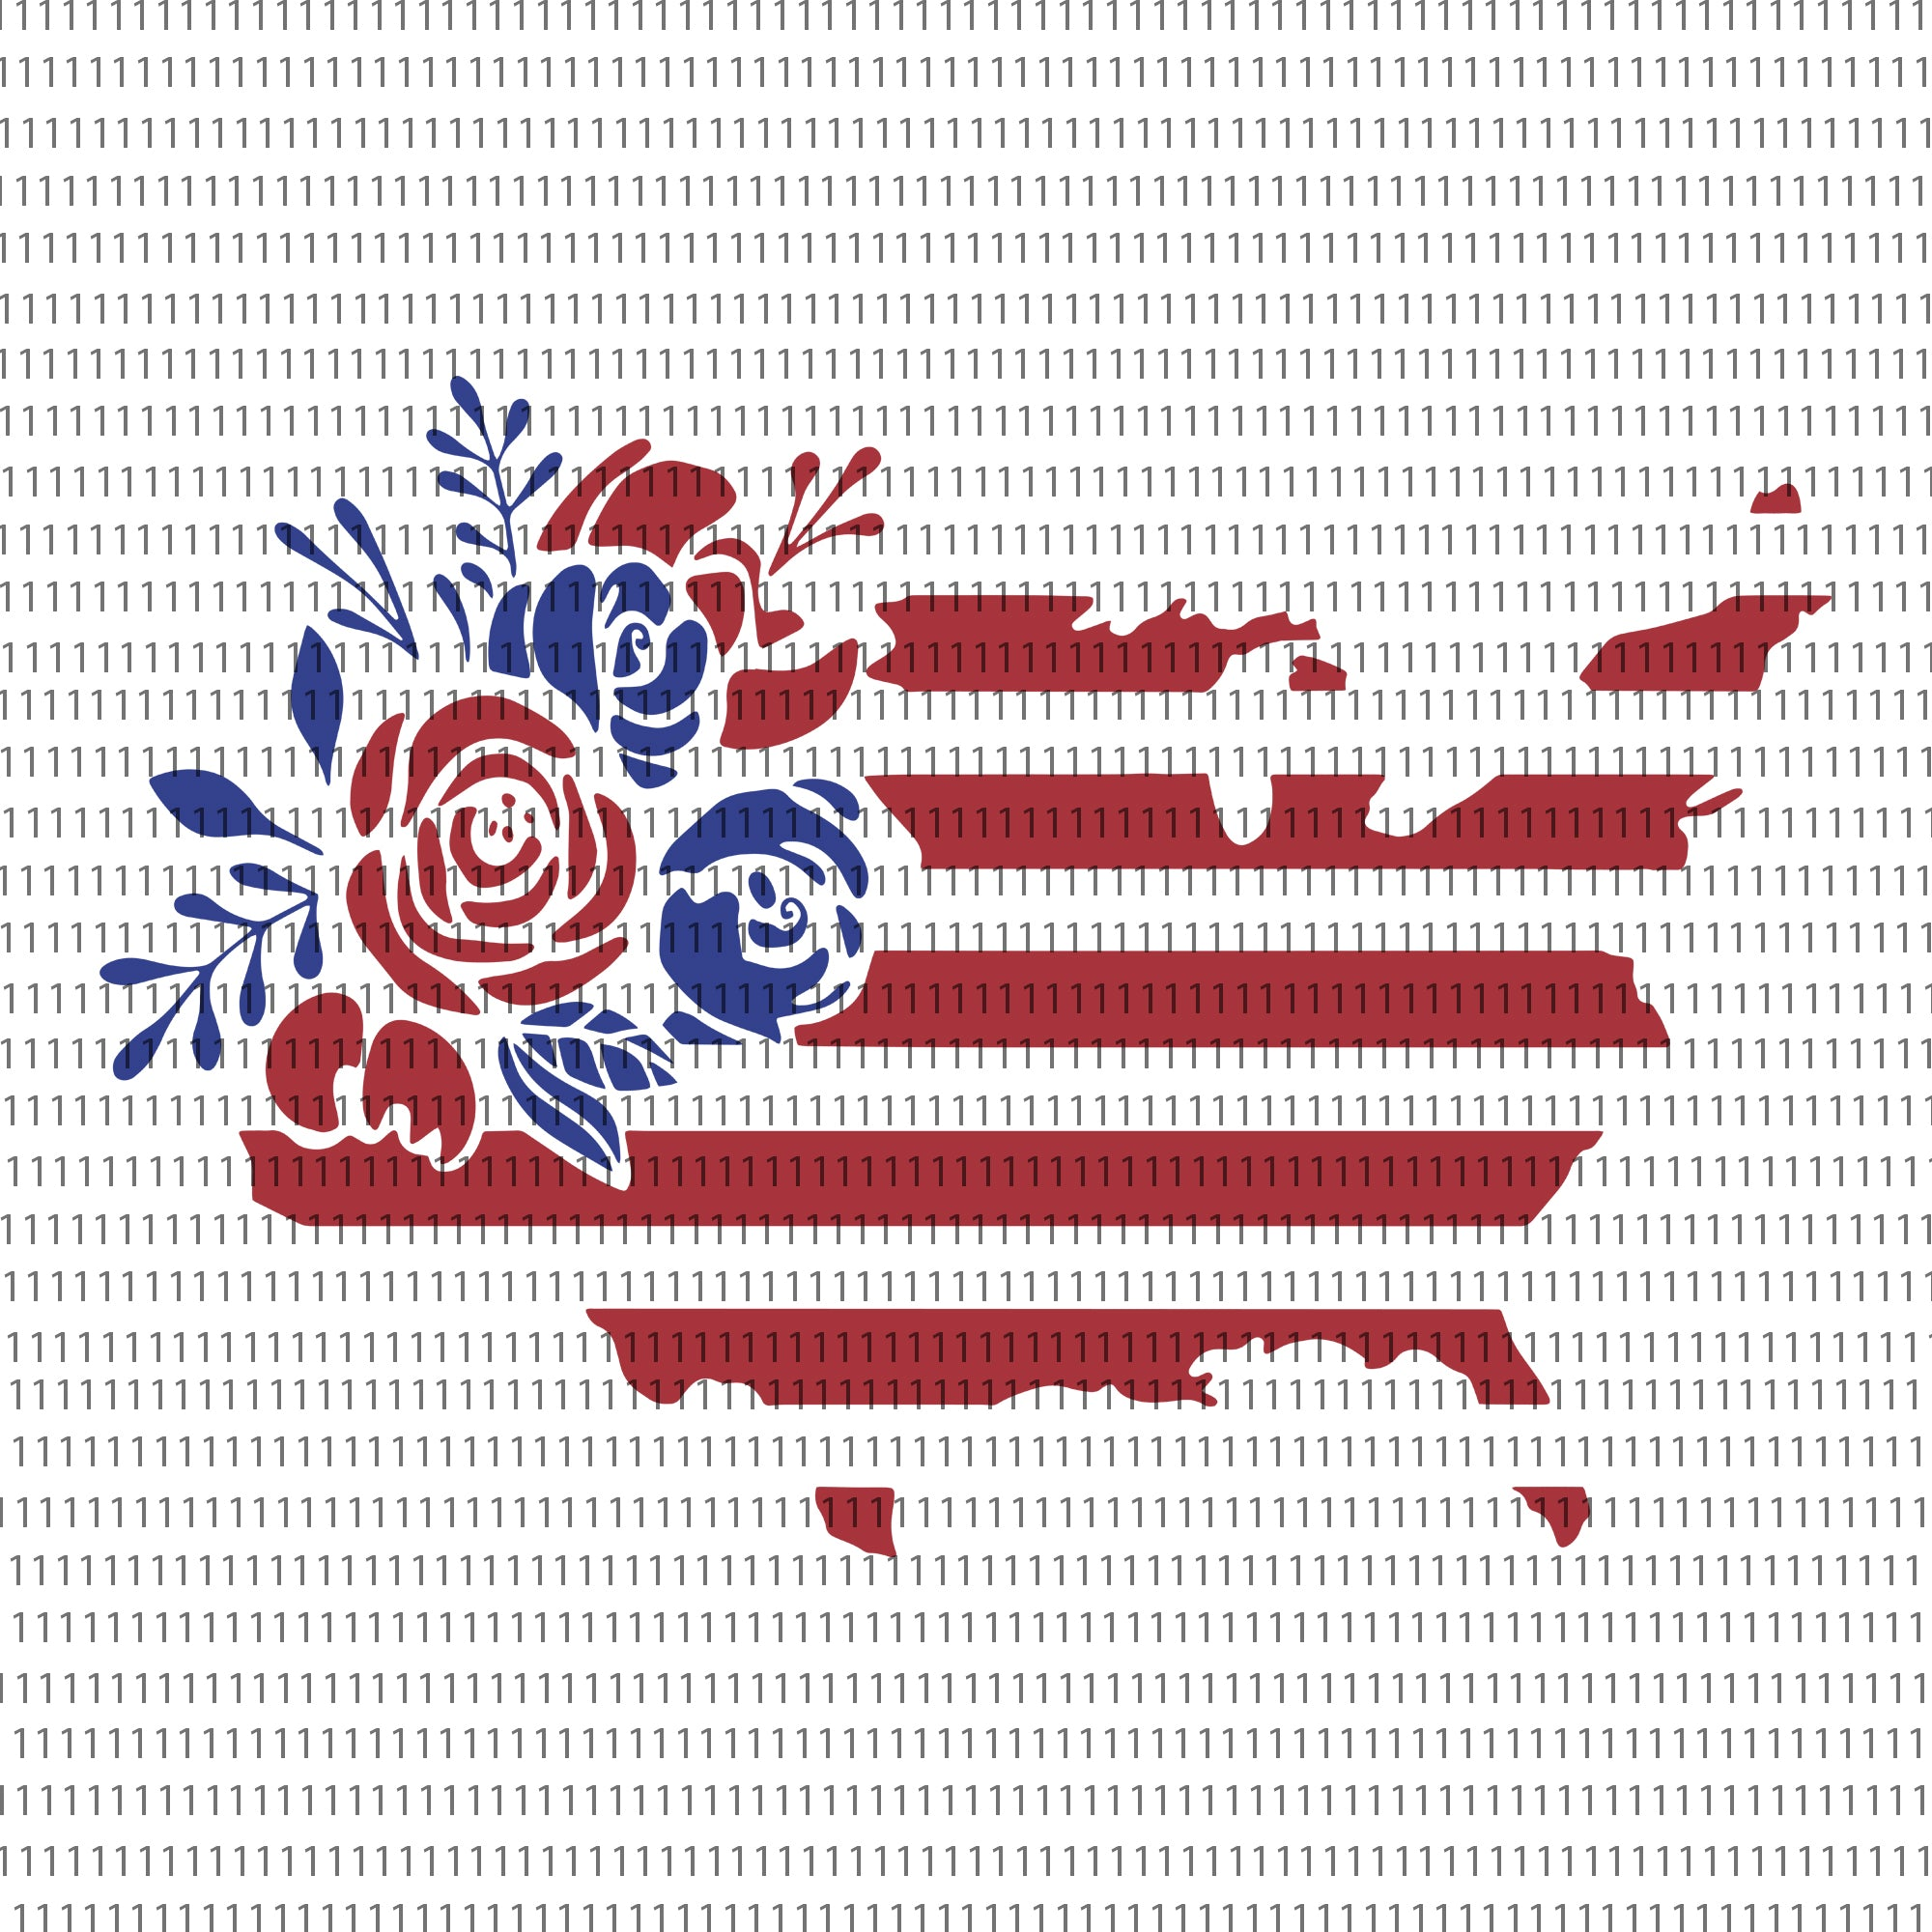 Floral American Flag, Floral American Flag SVG, Memorial Day Svg, 4th July , 4th July Svg, American Flag Svg, Distressed American Flag svg, Merica svg, USA Svg, US State